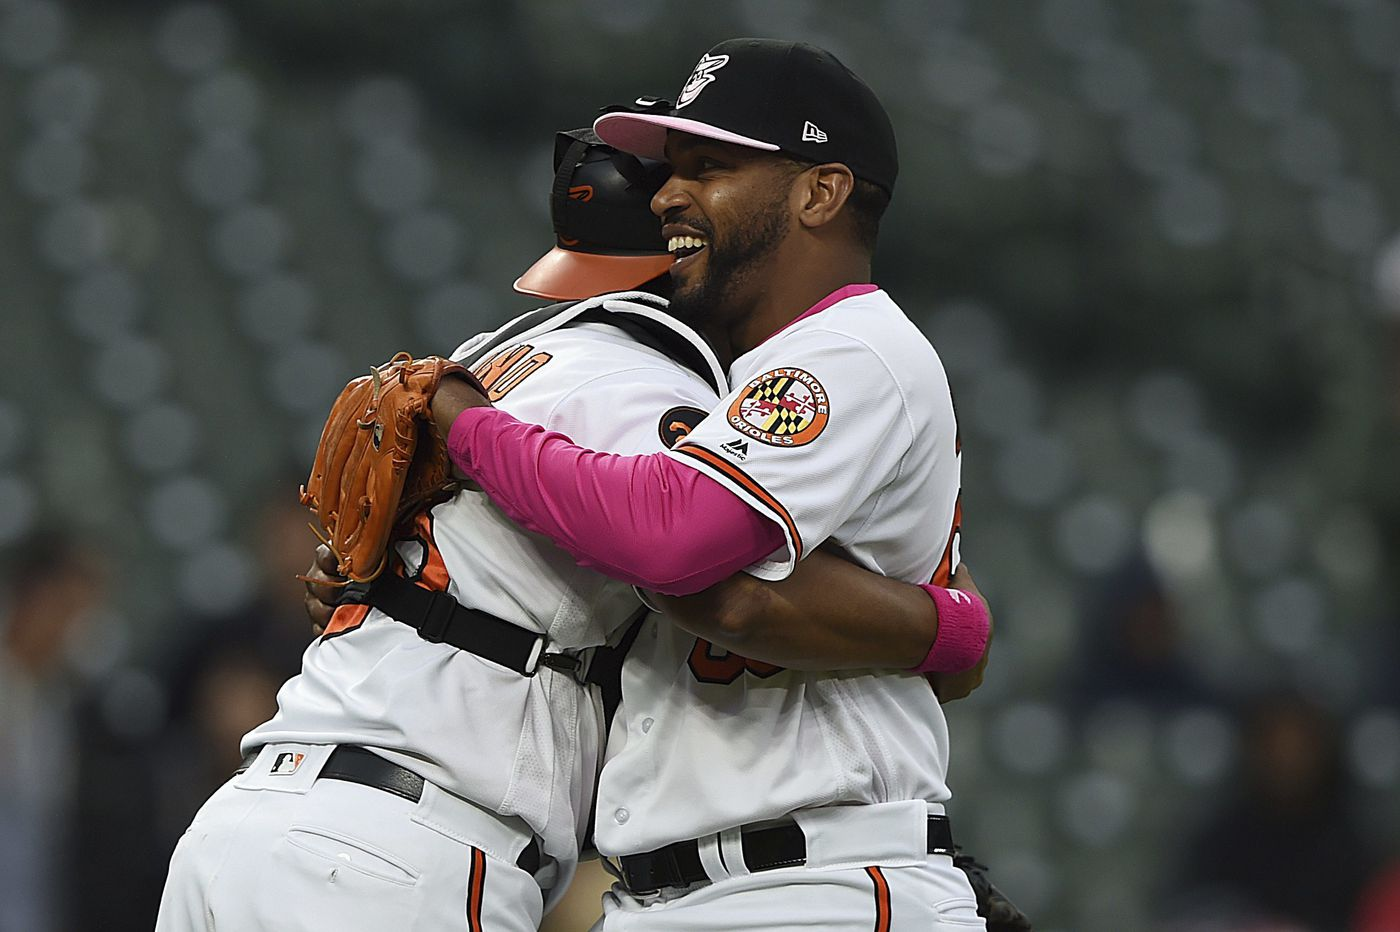 Meet the Orioles reliever who could provide significant help to the Phillies' ragtag bullpen